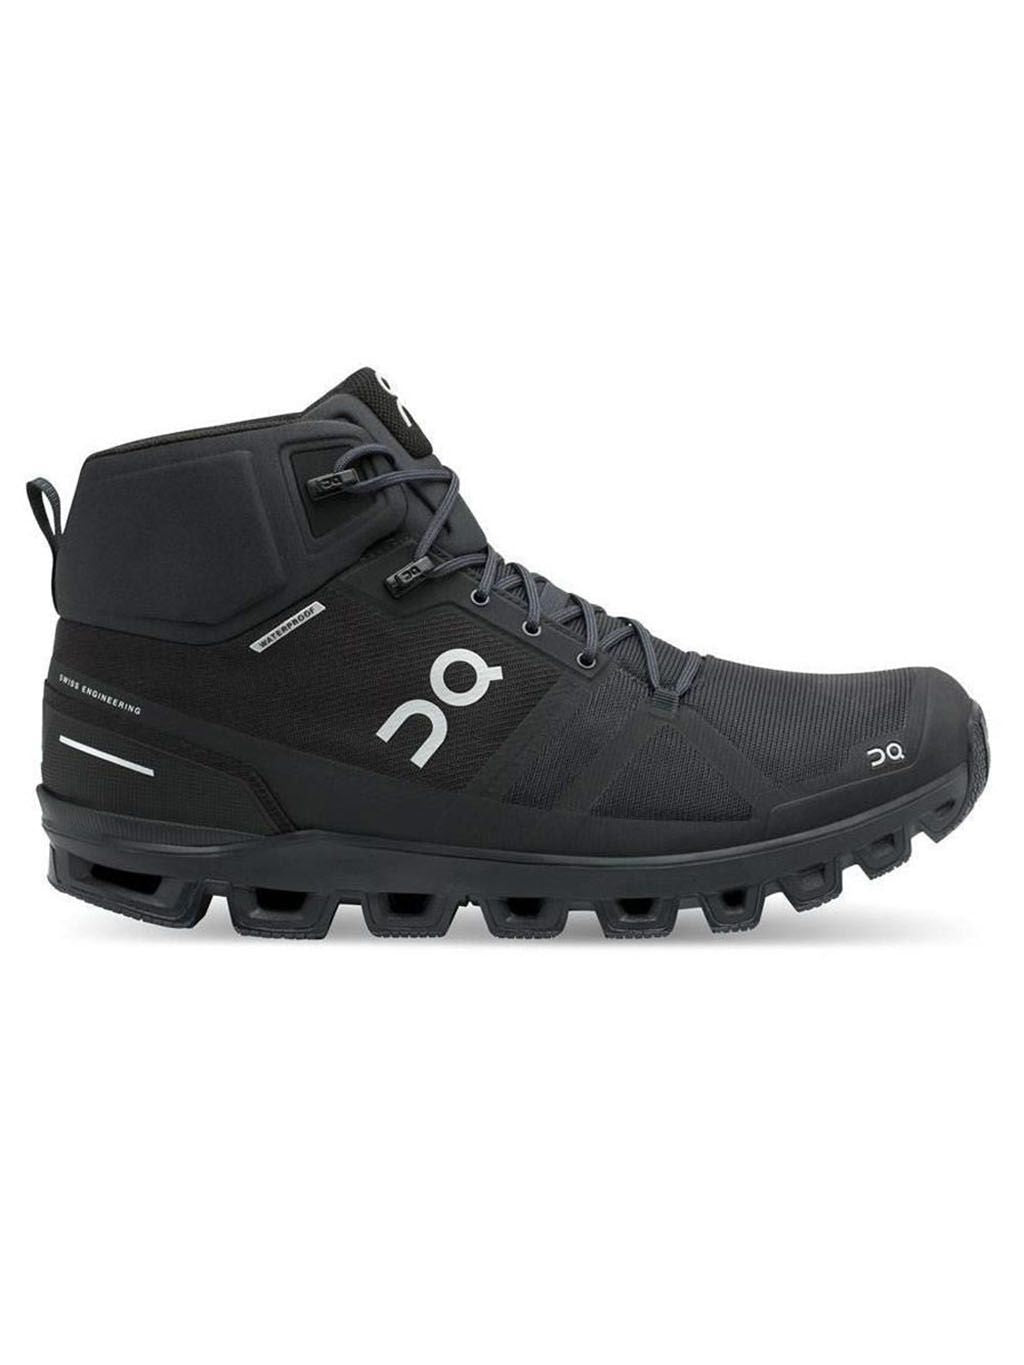 Black Cloudrock Waterproof Shoes